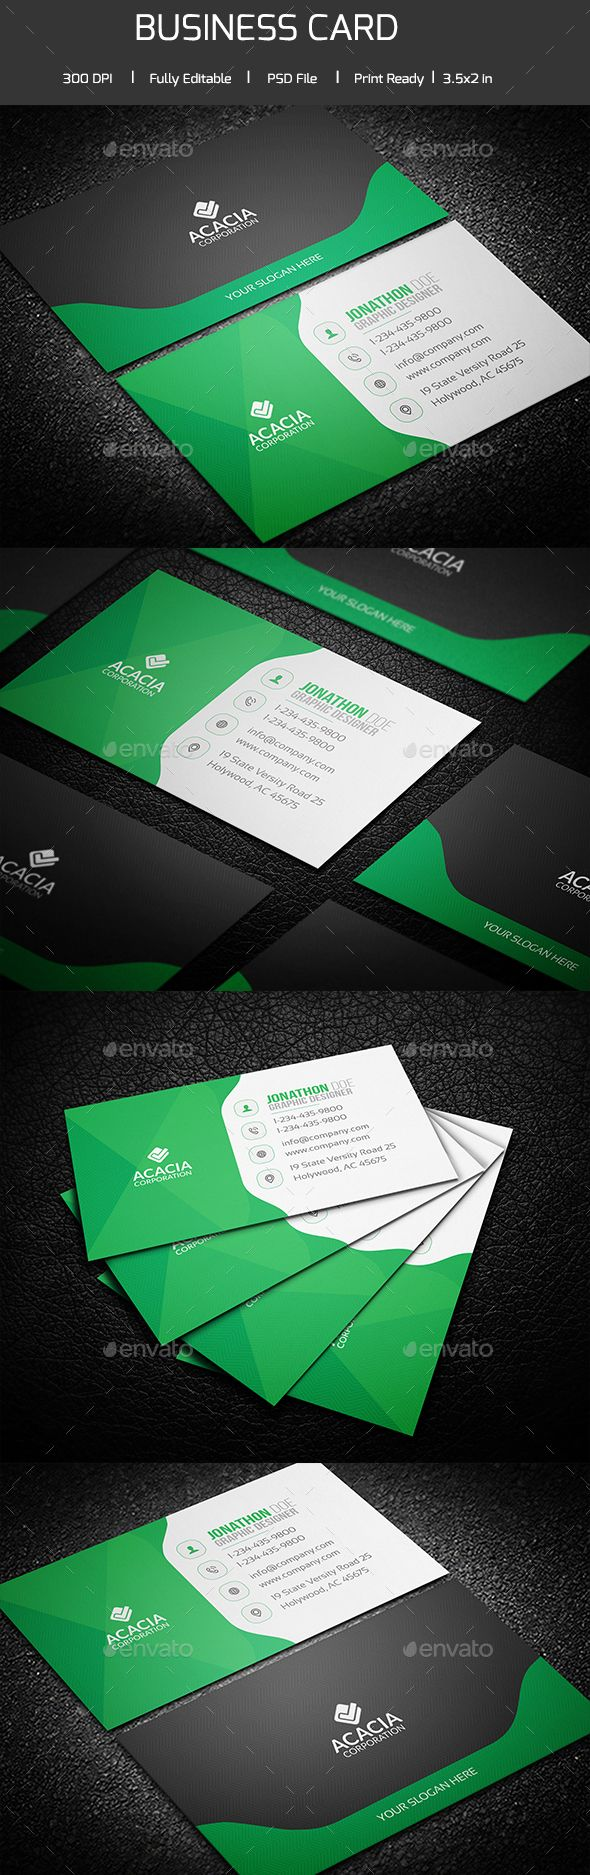 1439 best Cool Business Cards on Pinterest. images on Pinterest ...